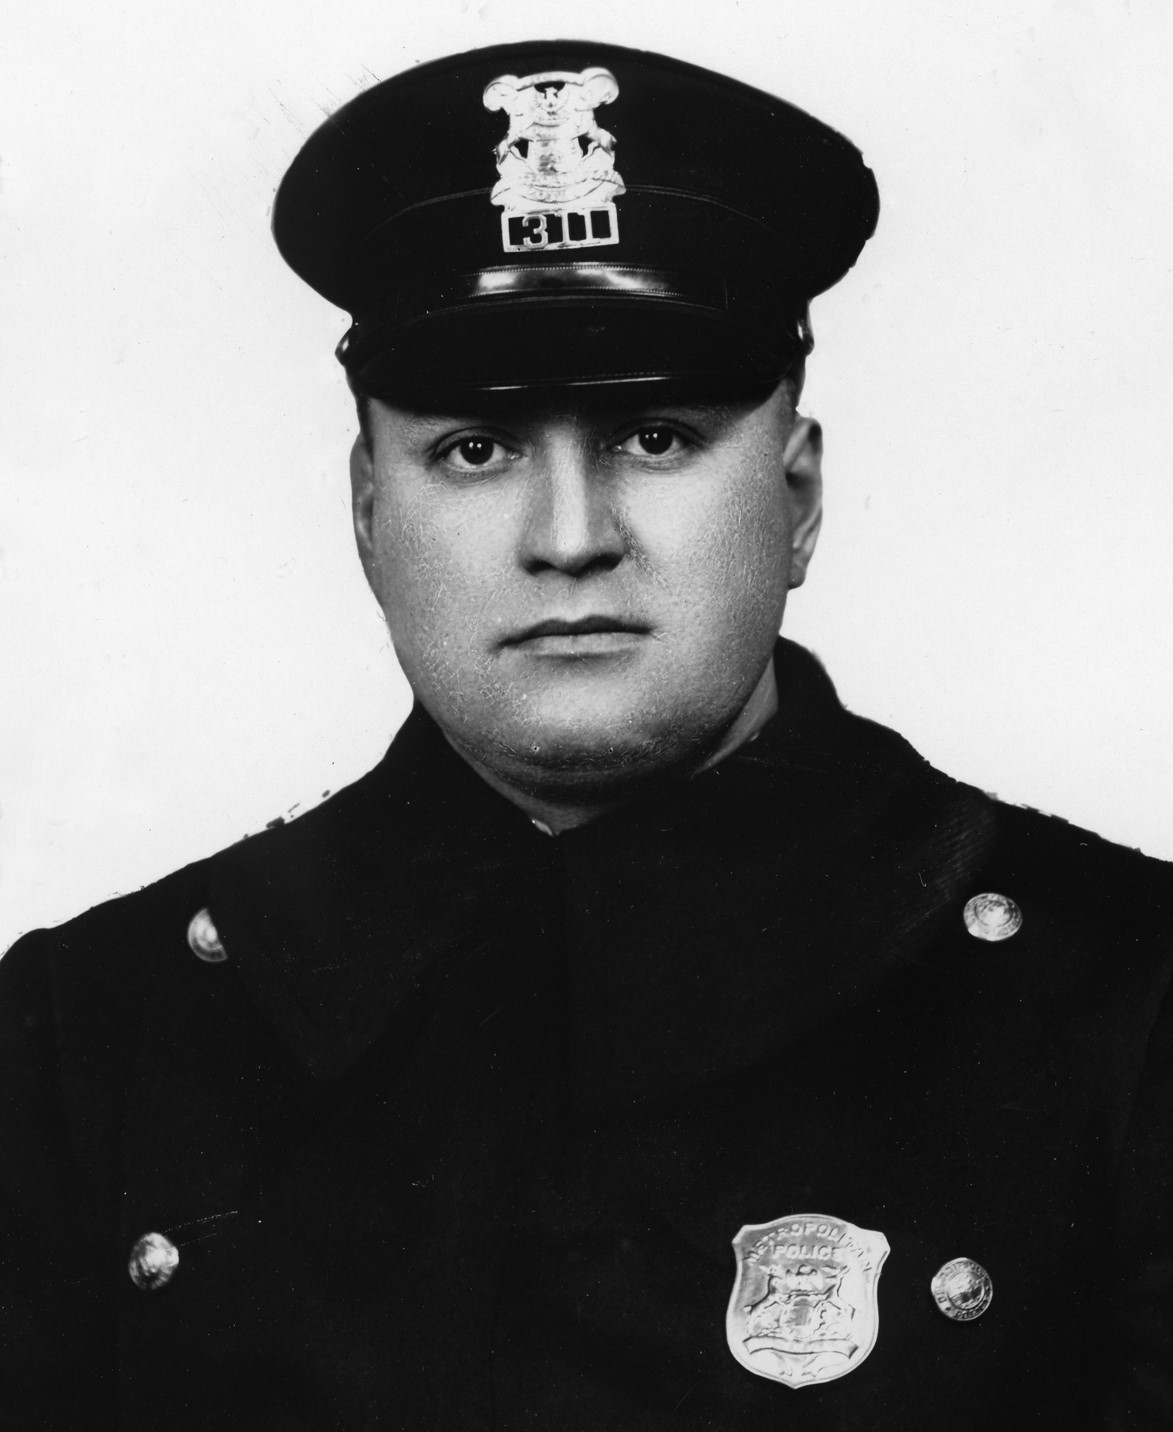 Police Officer Charles W. Sieger | Detroit Police Department, Michigan